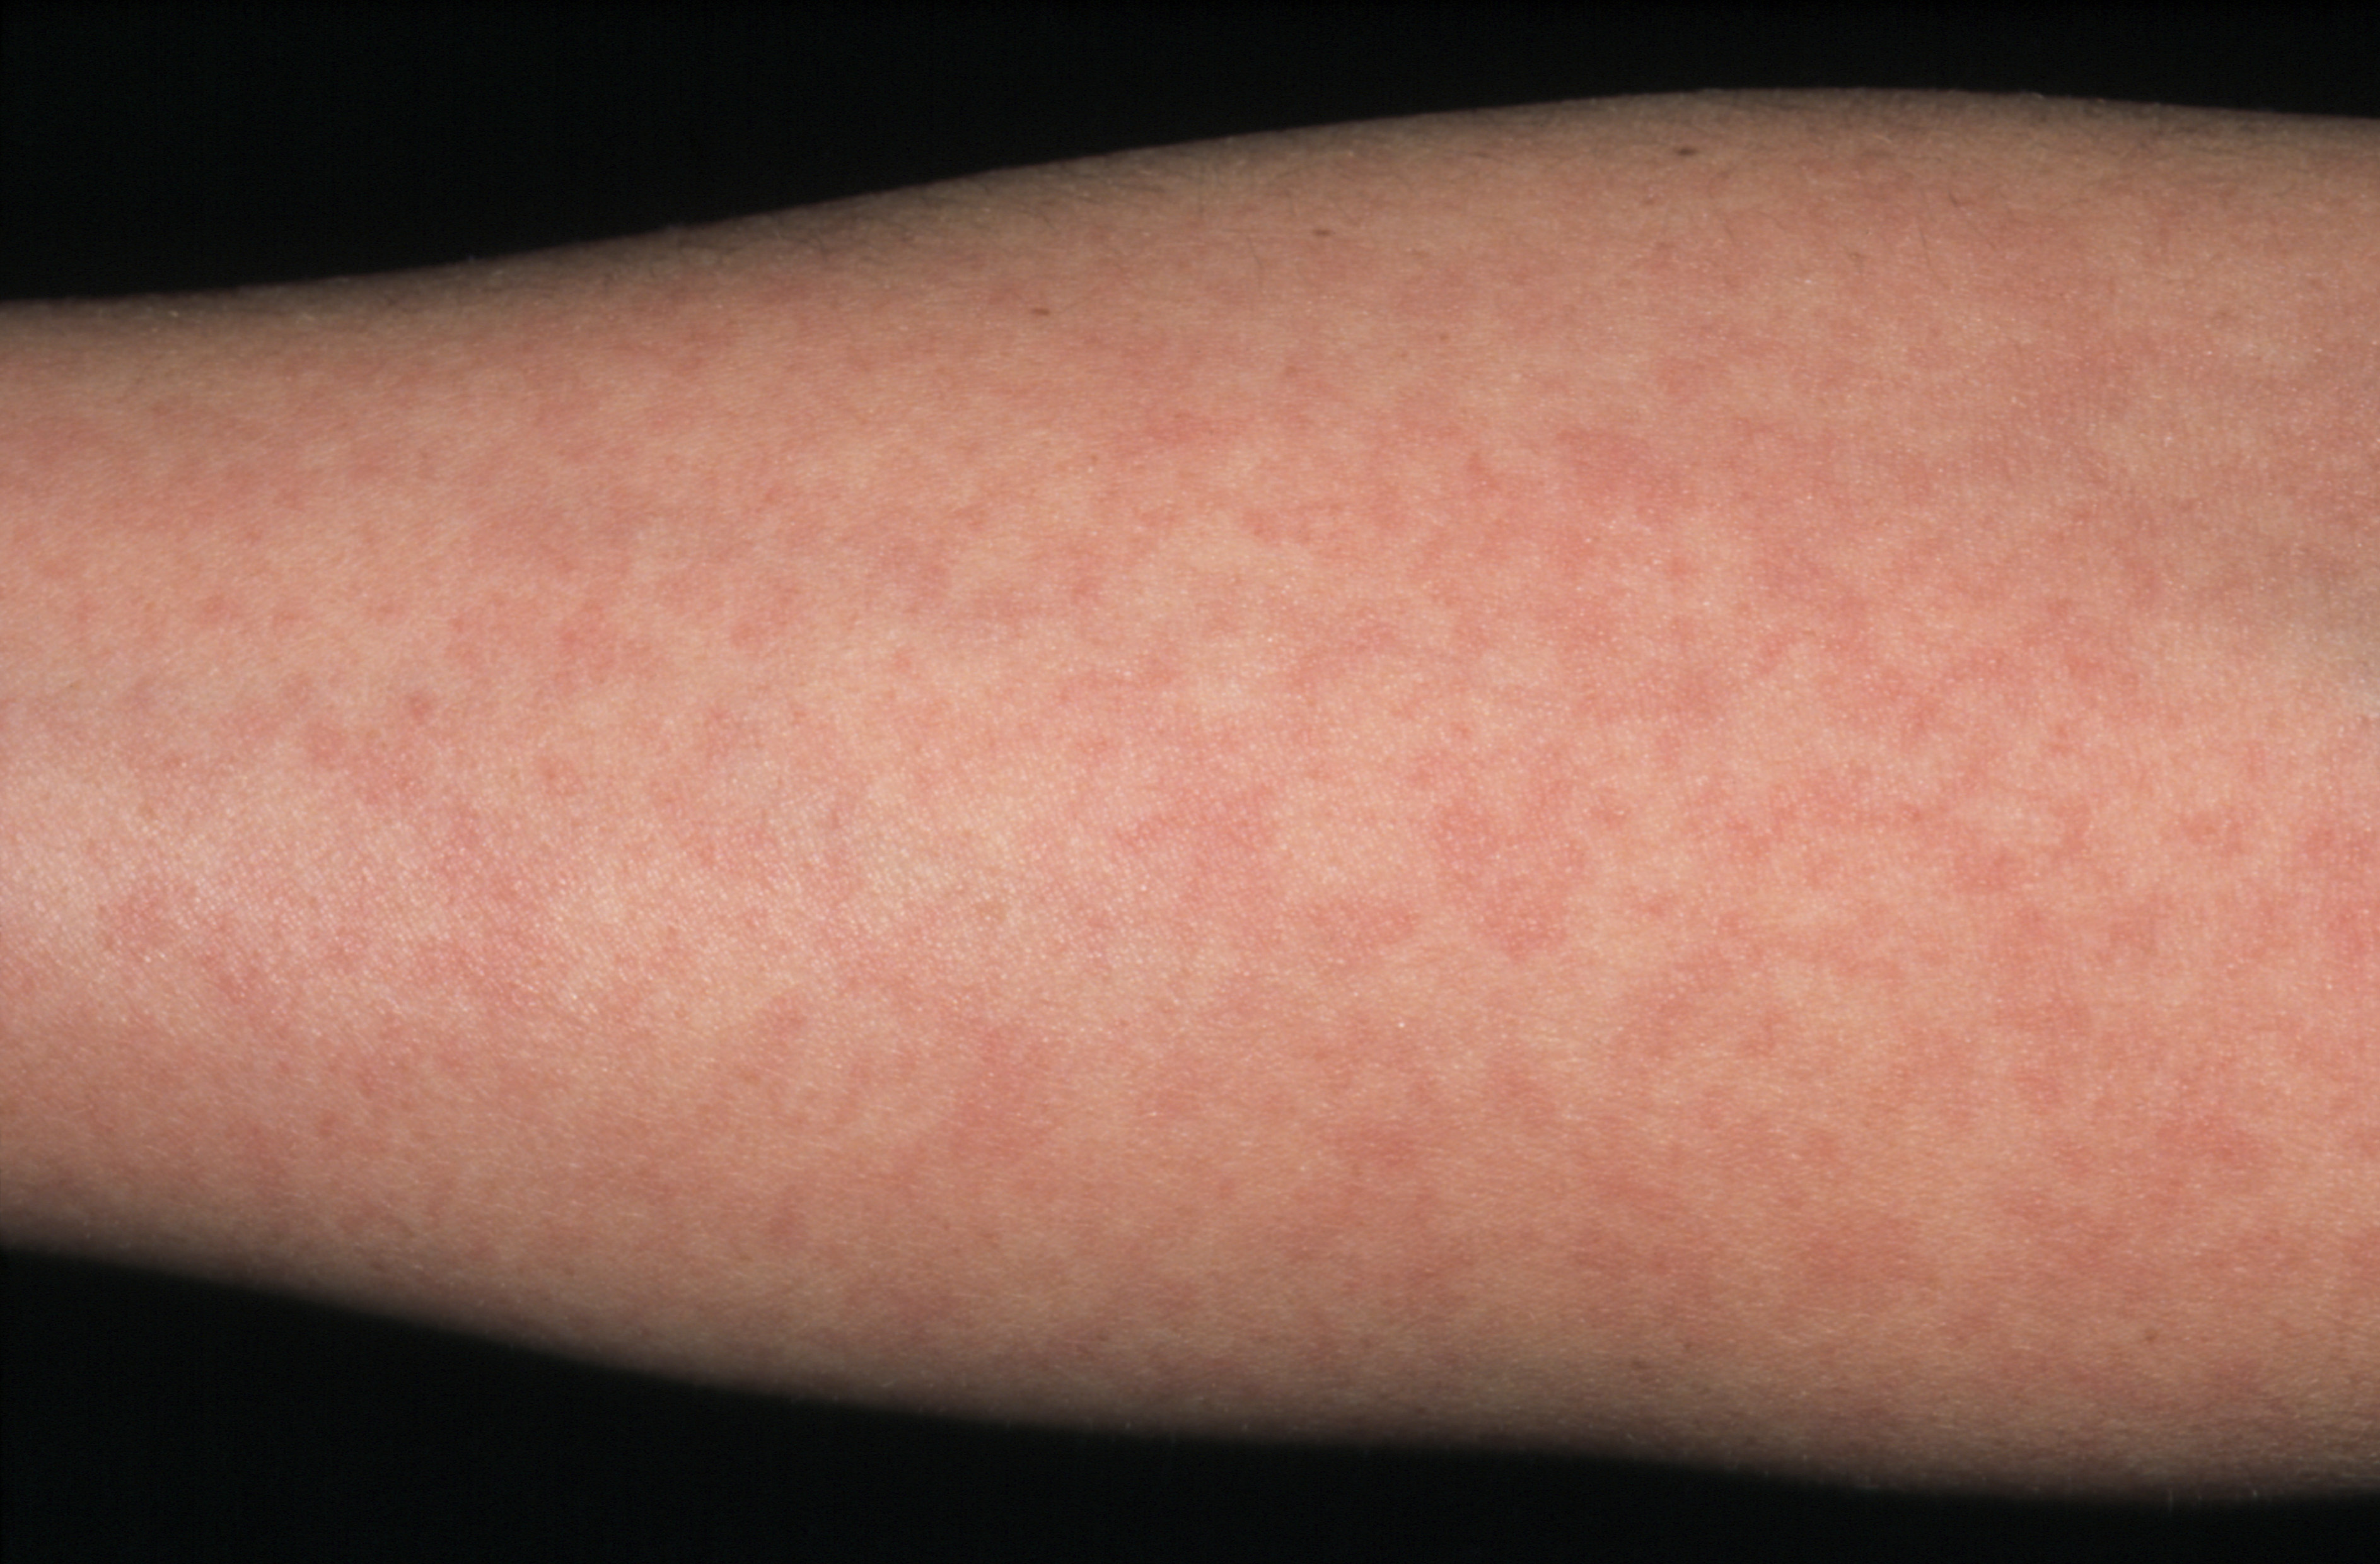 A suspected viral rash in pregnancy | The BMJ